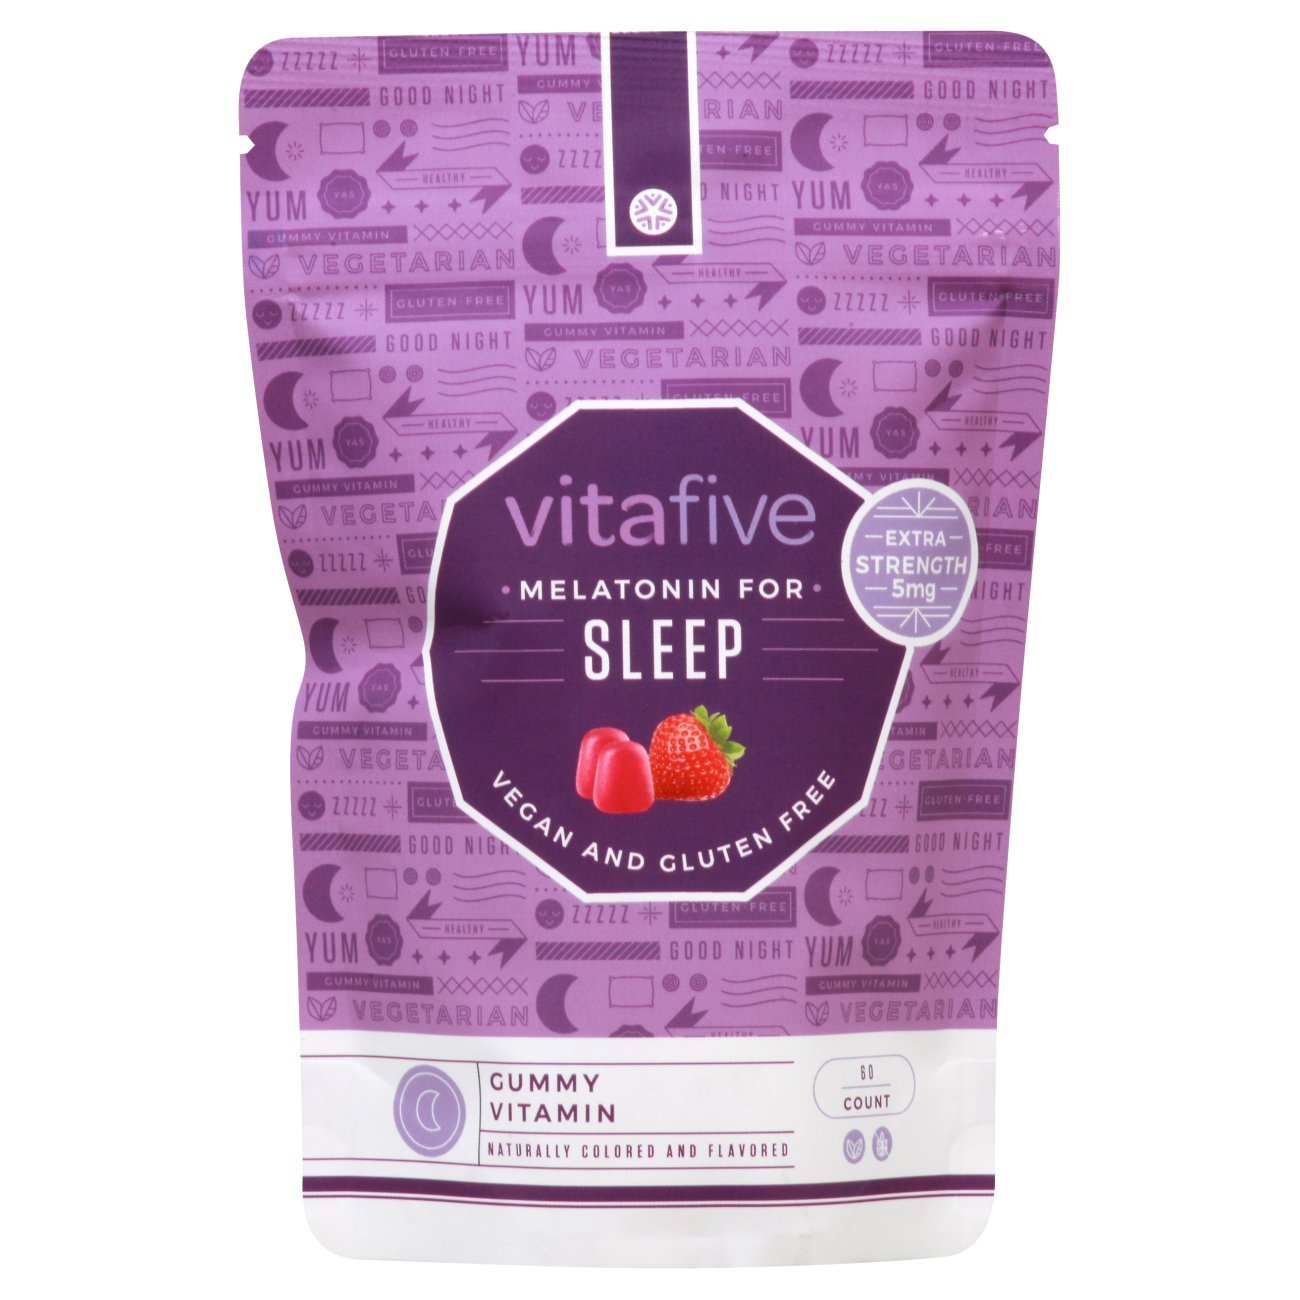 Vitafive Melatonin Sleep Gummies 5mg Shop Diet Fitness At H E B